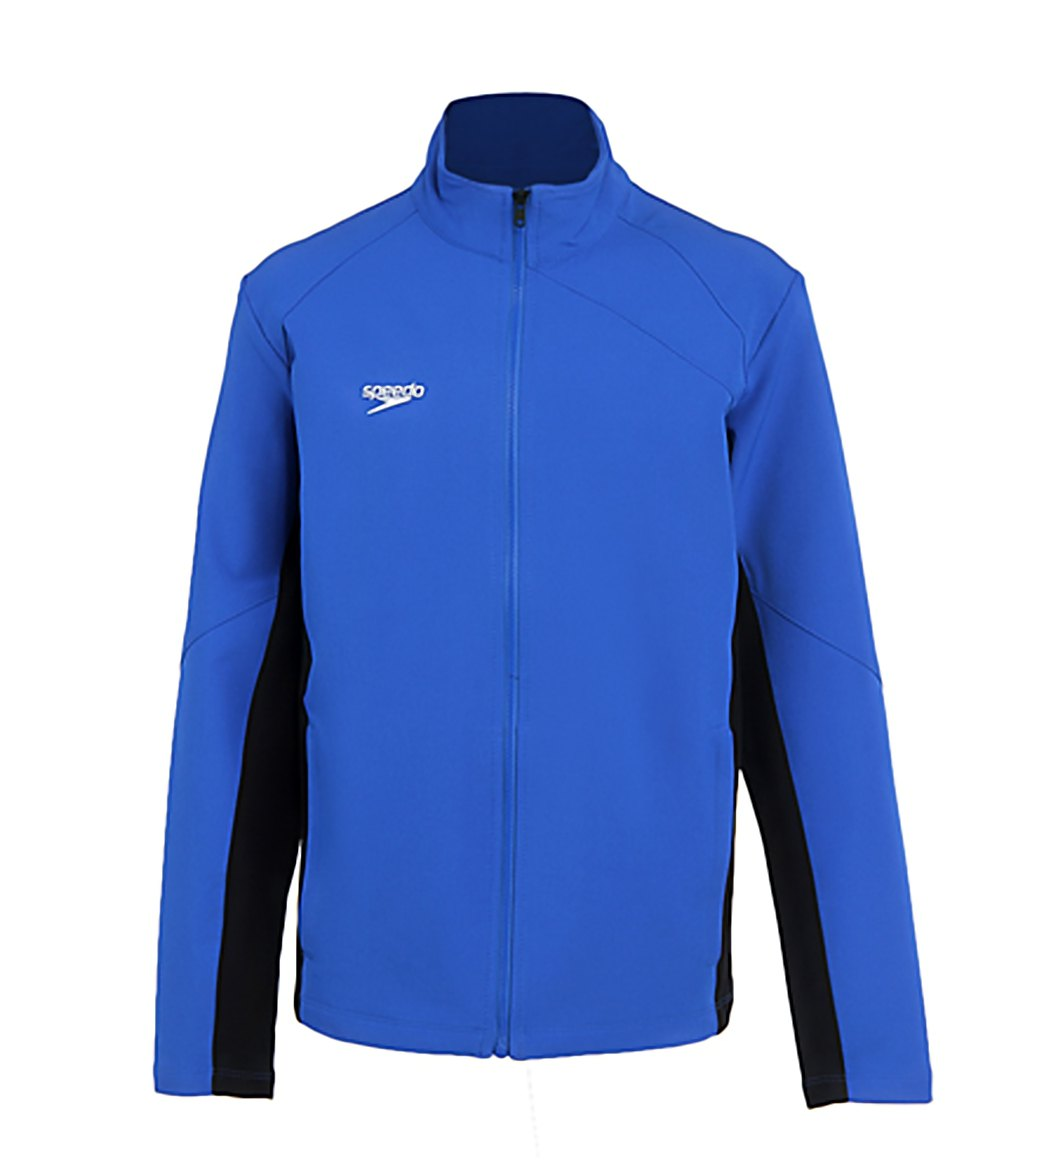 731c001bcbf Speedo Youth Boom Force Warm Up Jacket at SwimOutlet.com - Free ...